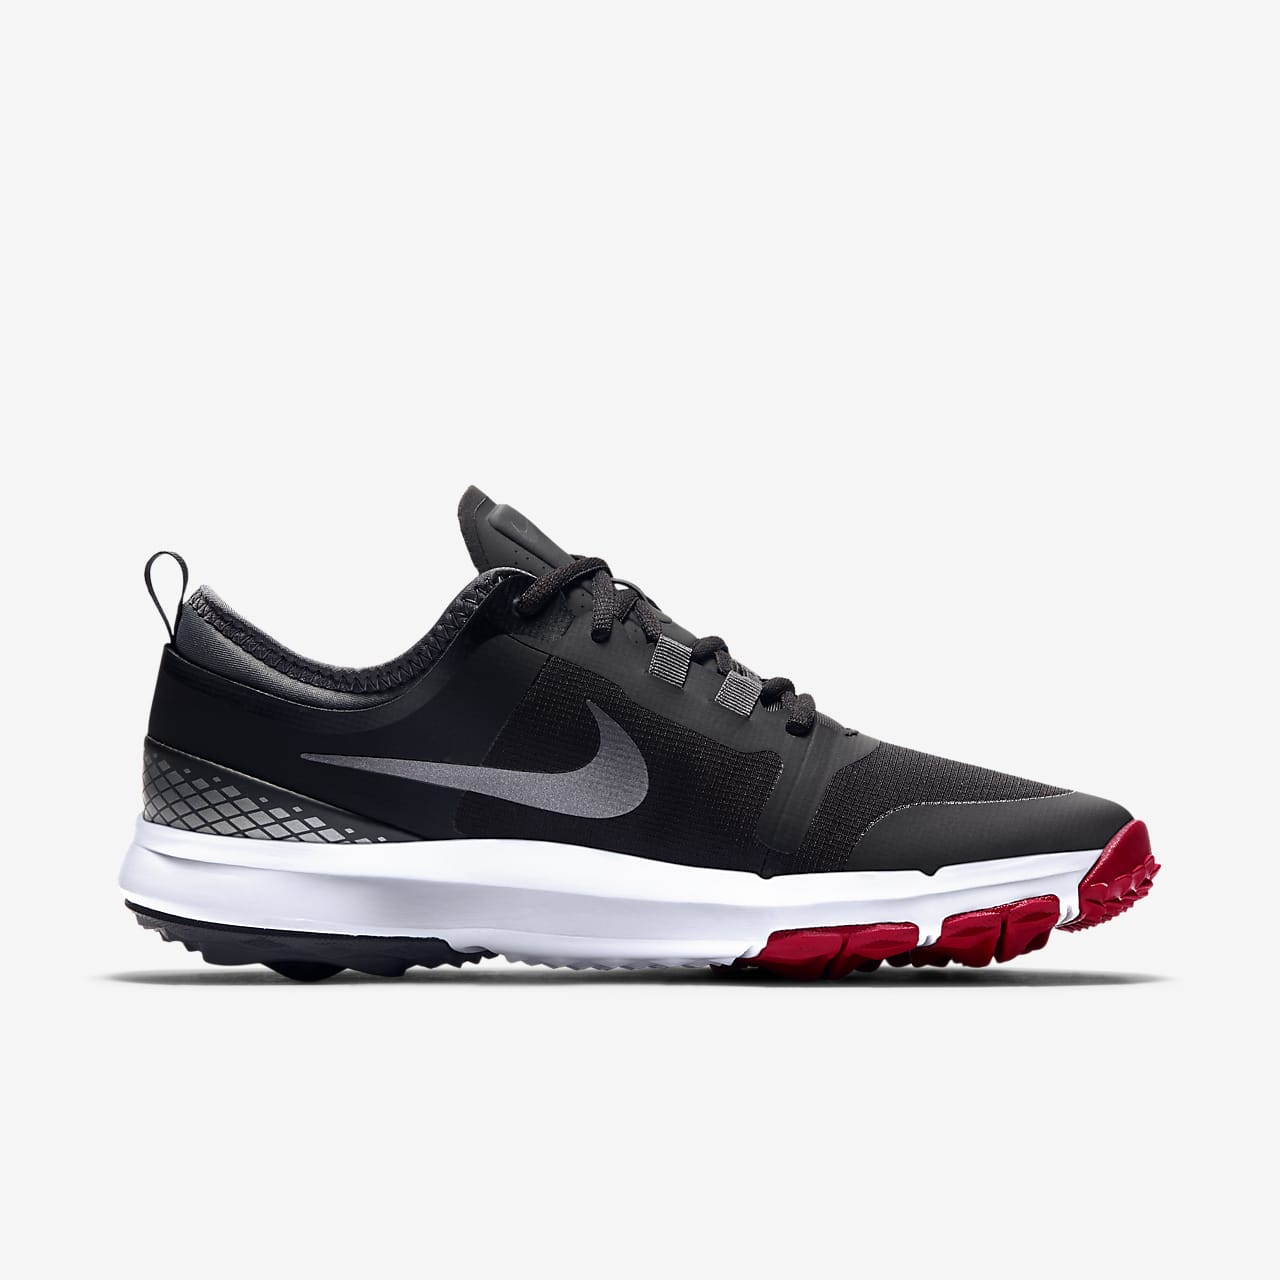 ayuda aplausos Equipo de juegos  Parity > nike f1 golf shoes, Up to 70% OFF